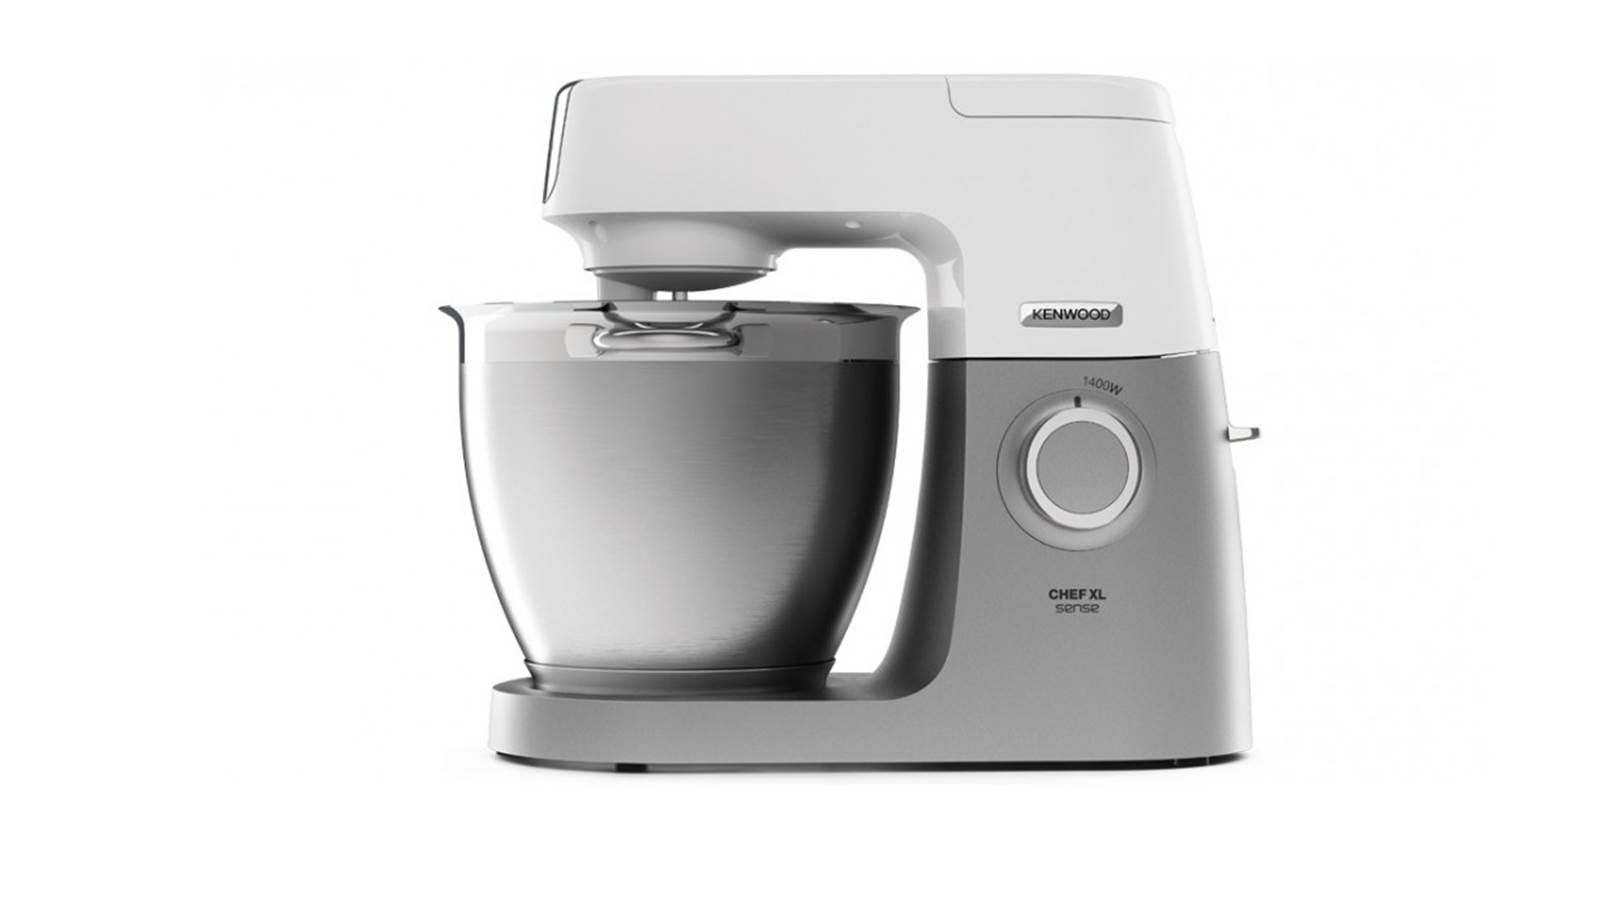 kenwood kvl 6100t chef sense xl mixer titanium harvey norman malaysia. Black Bedroom Furniture Sets. Home Design Ideas